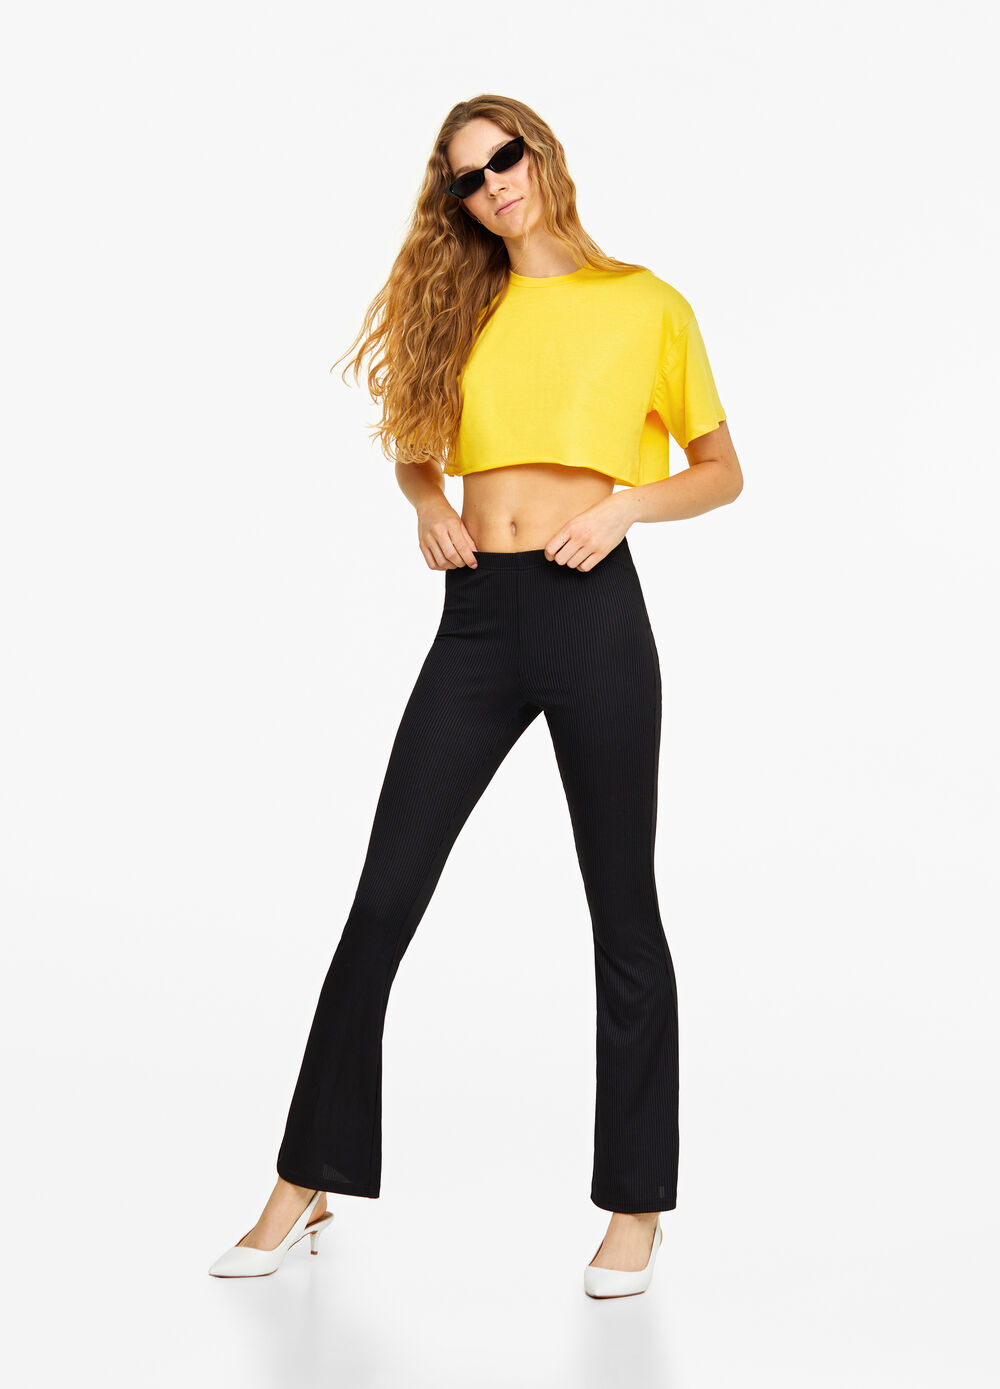 Cropped T-shirt in 100% cotton